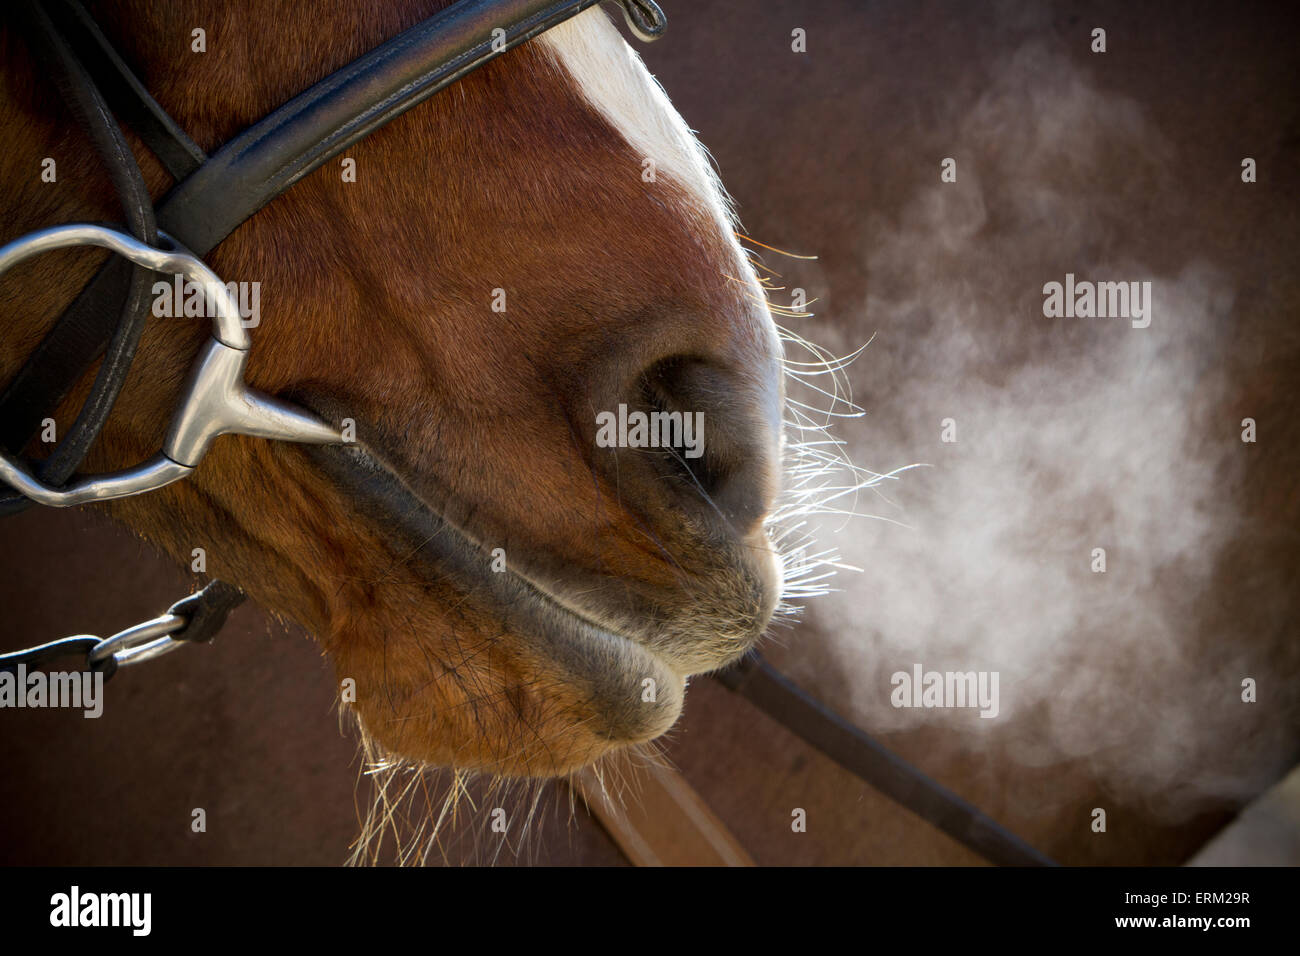 A horse with bridle and bit, breathing heavily after exercise, steam rising in cold air. - Stock Image